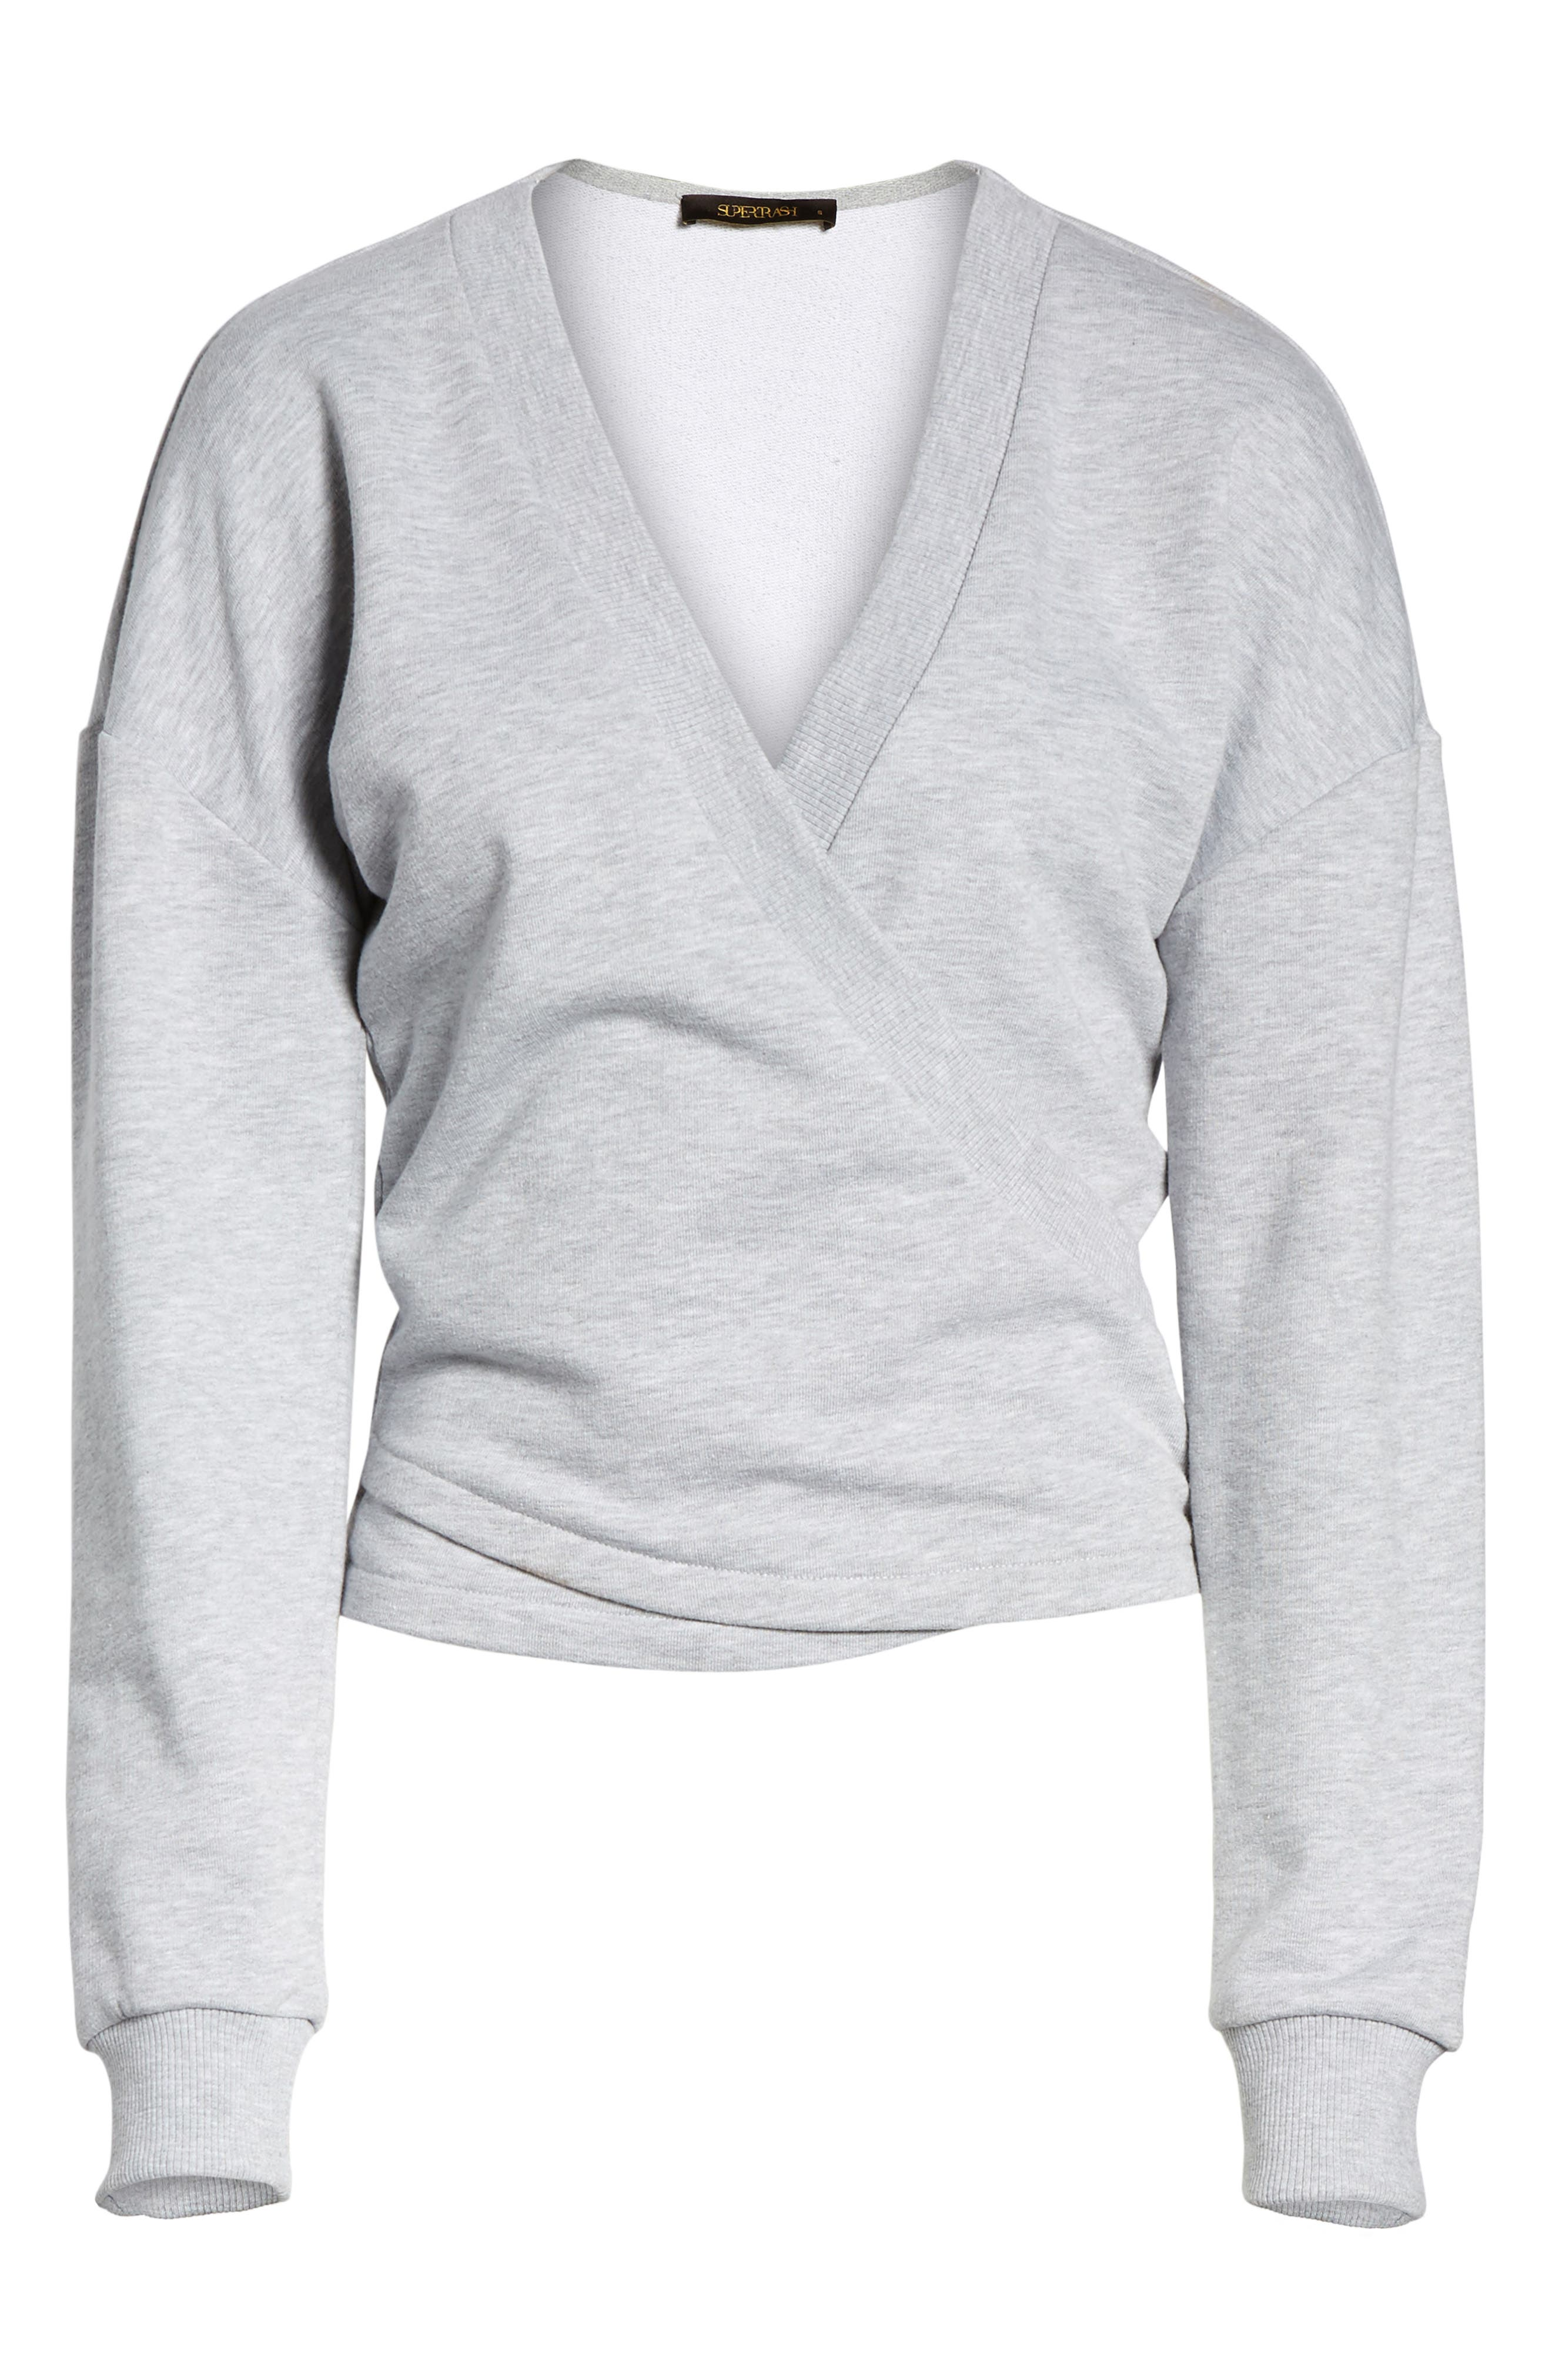 Teaser Faux Wrap Sweatshirt,                             Alternate thumbnail 6, color,                             020